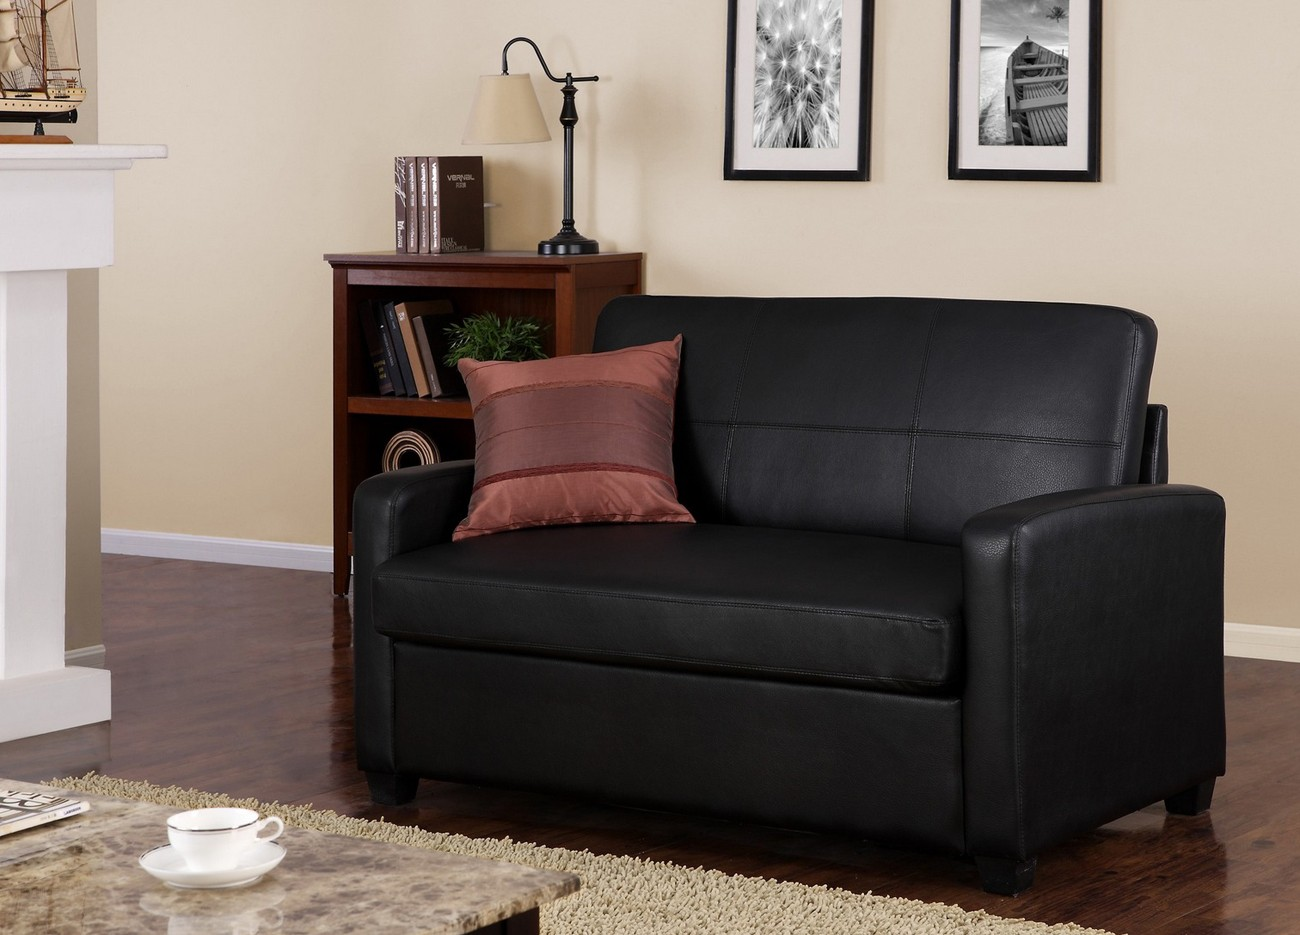 classy black leather single sleeper chair decorated in the living room with decorative cushion and beige rug plus wooden side board